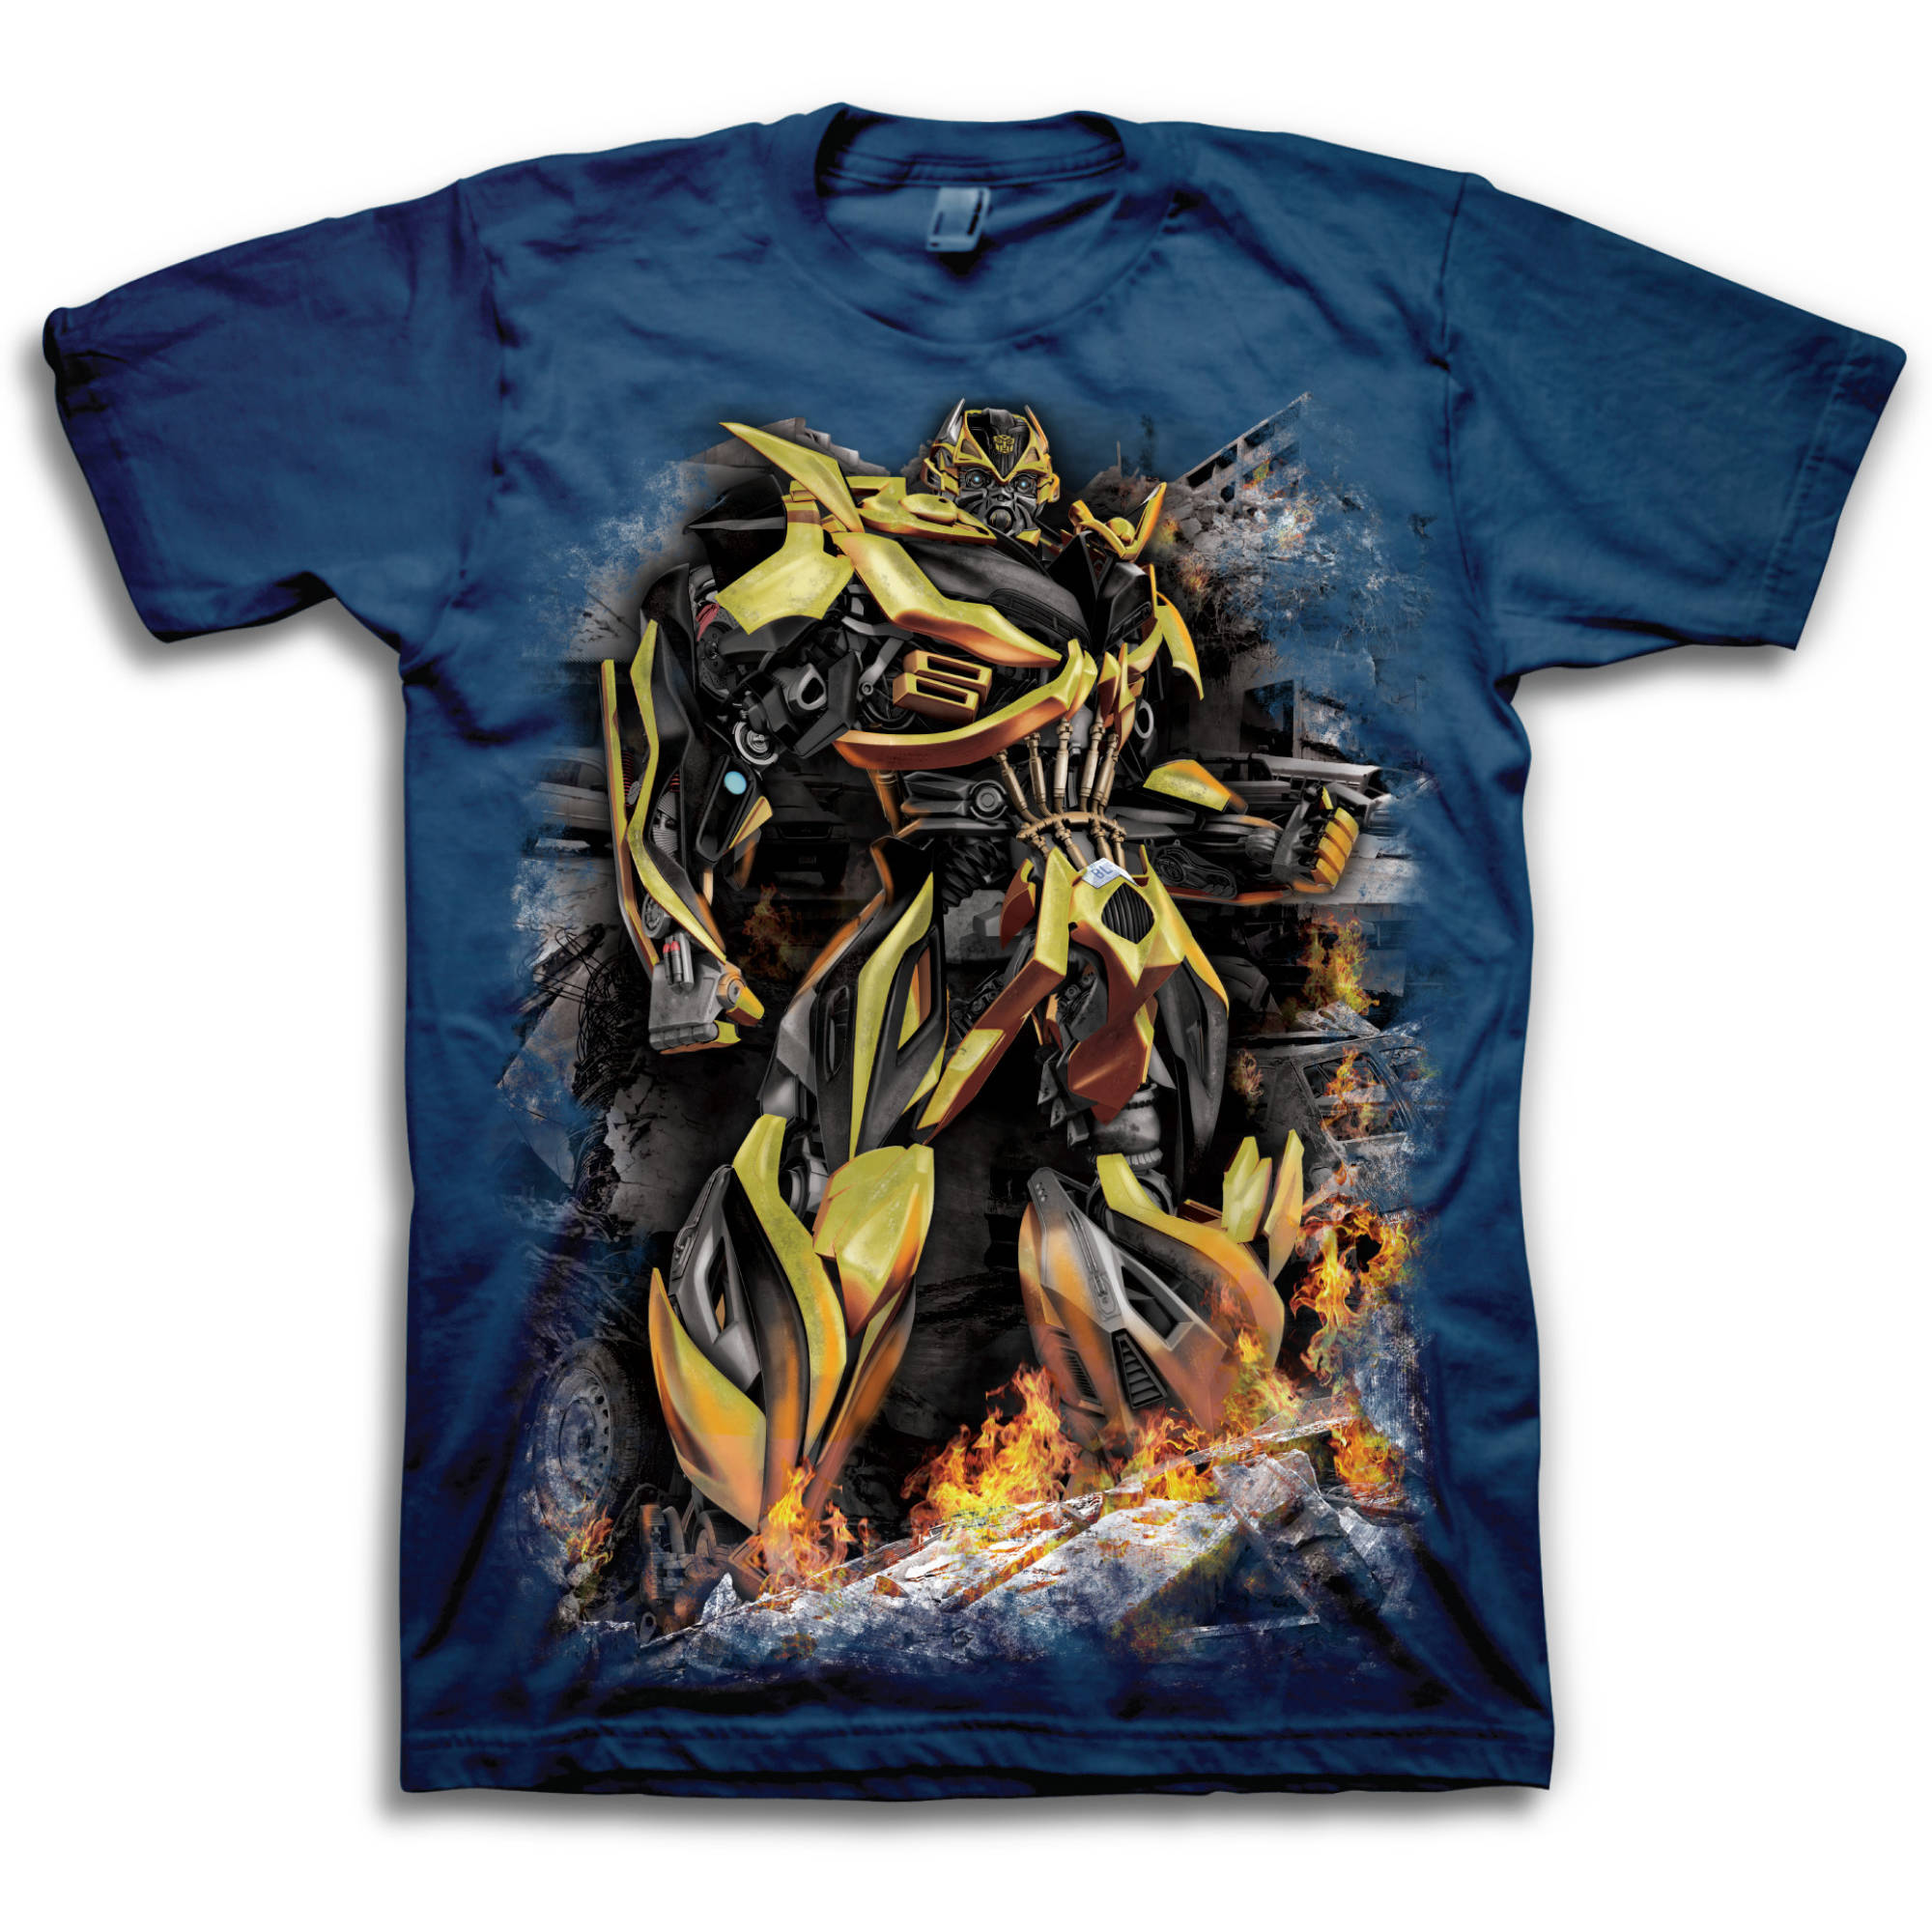 Transformers Bumble Bee Men's Short Sleeve T-shirt